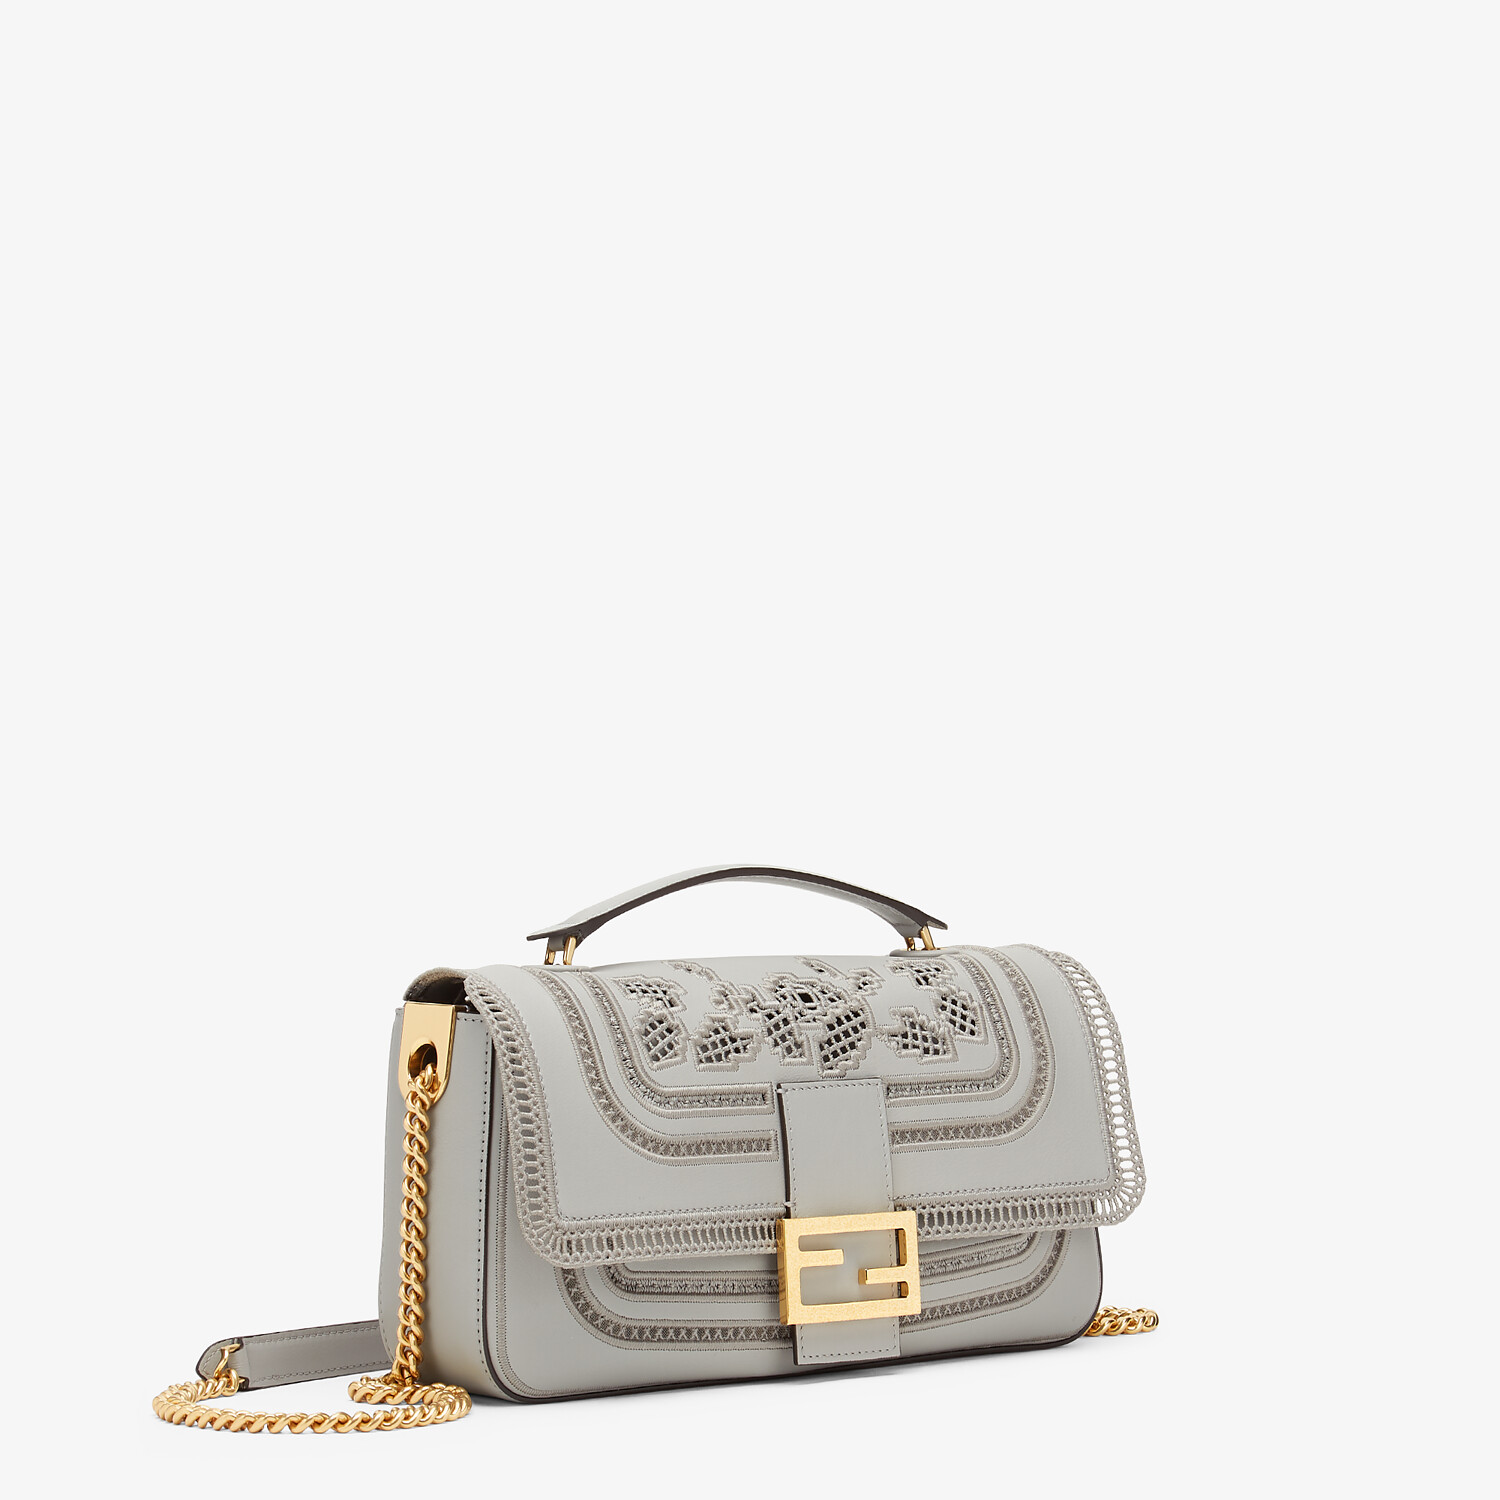 FENDI BAGUETTE CHAIN - Embroidered grey leather bag - view 2 detail